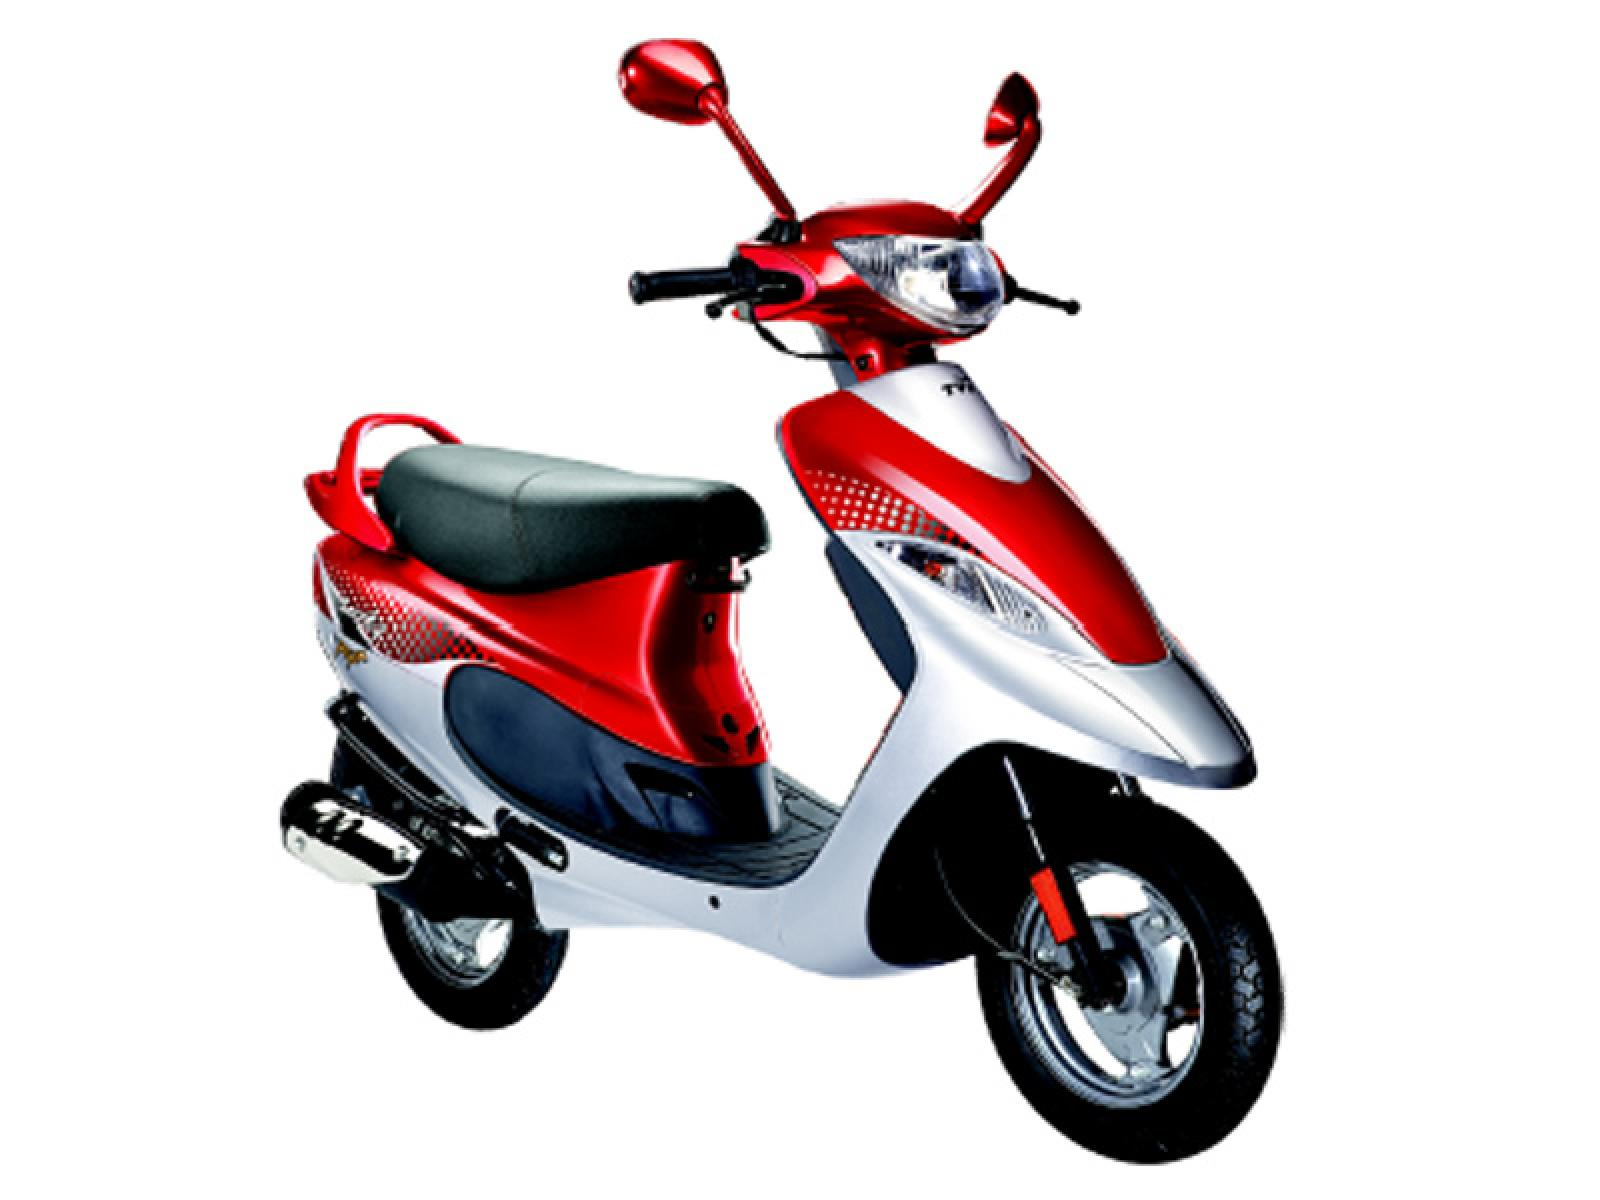 Tvs scooty photo - 2